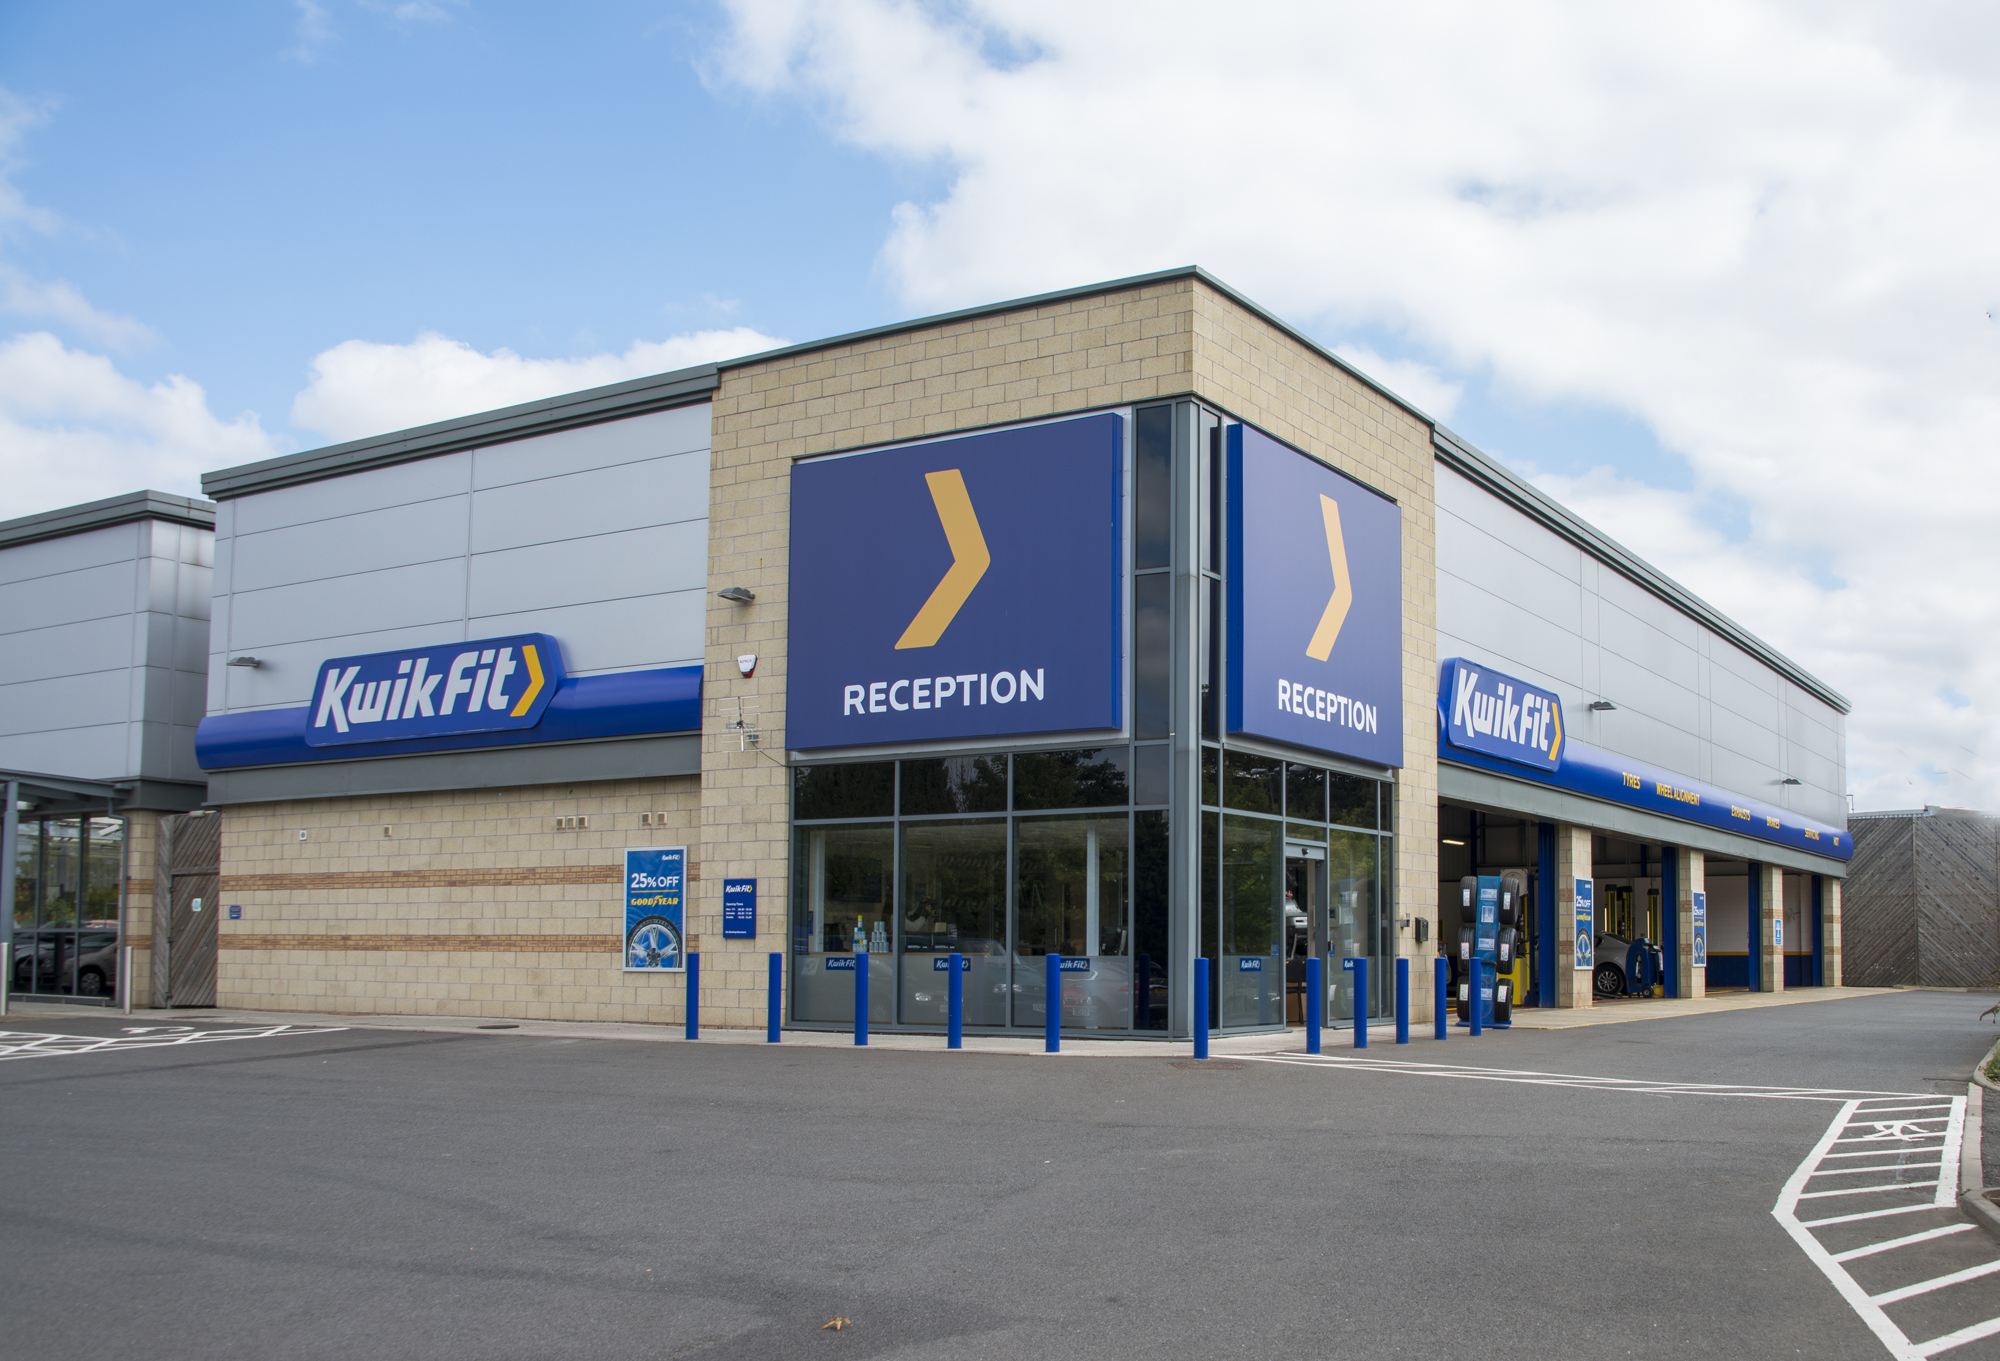 Kwik Fit expansion: Bath added to target list of 25 towns and cities